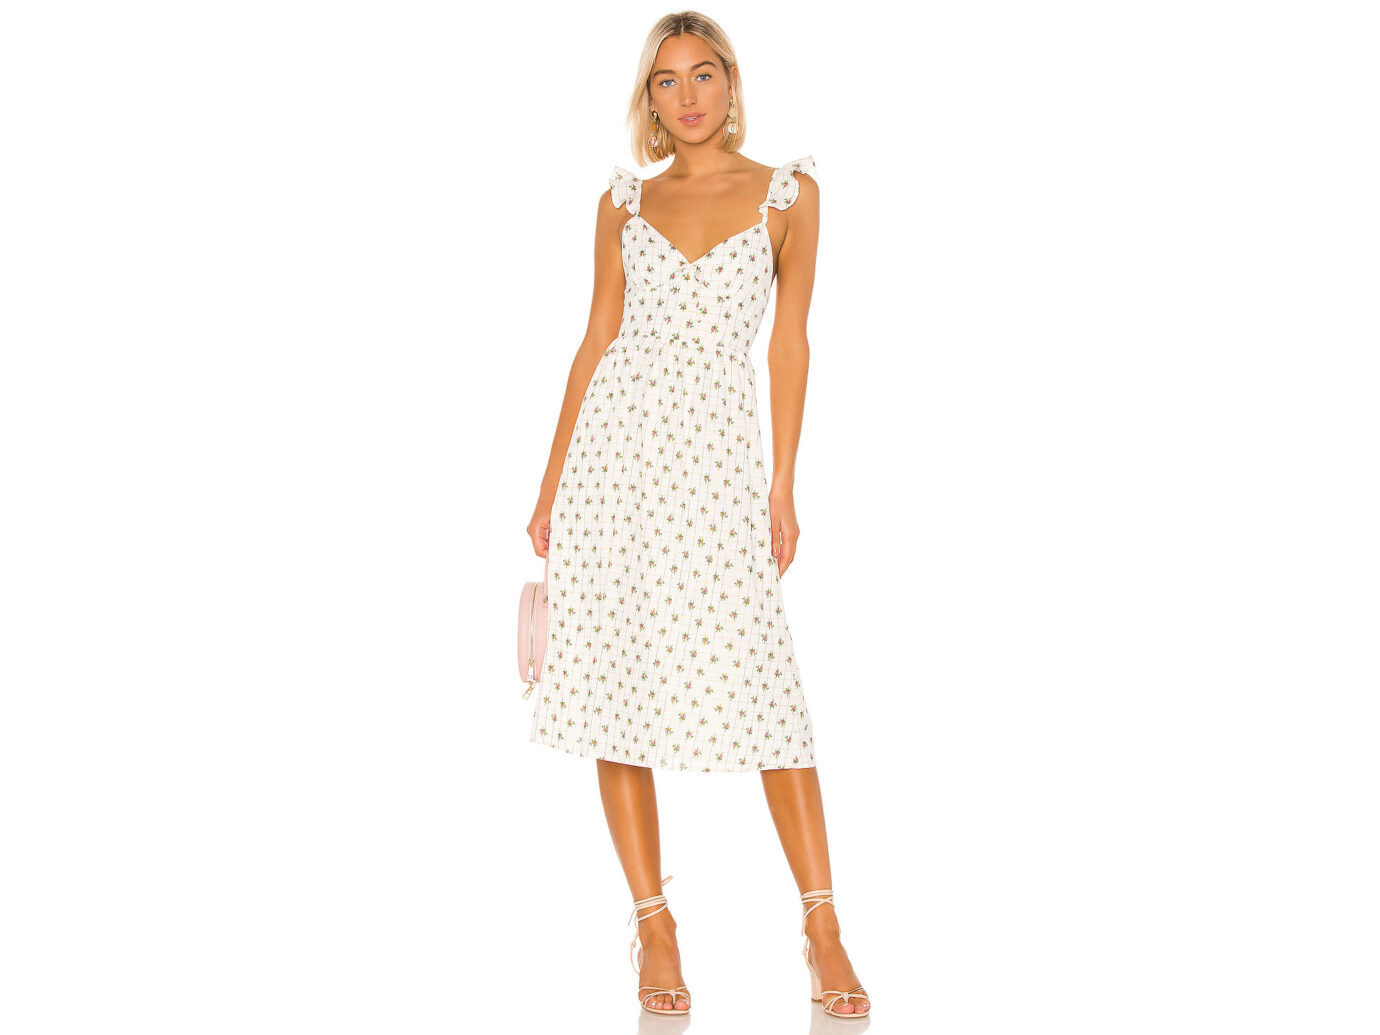 Majorelle Maura Midi Dress